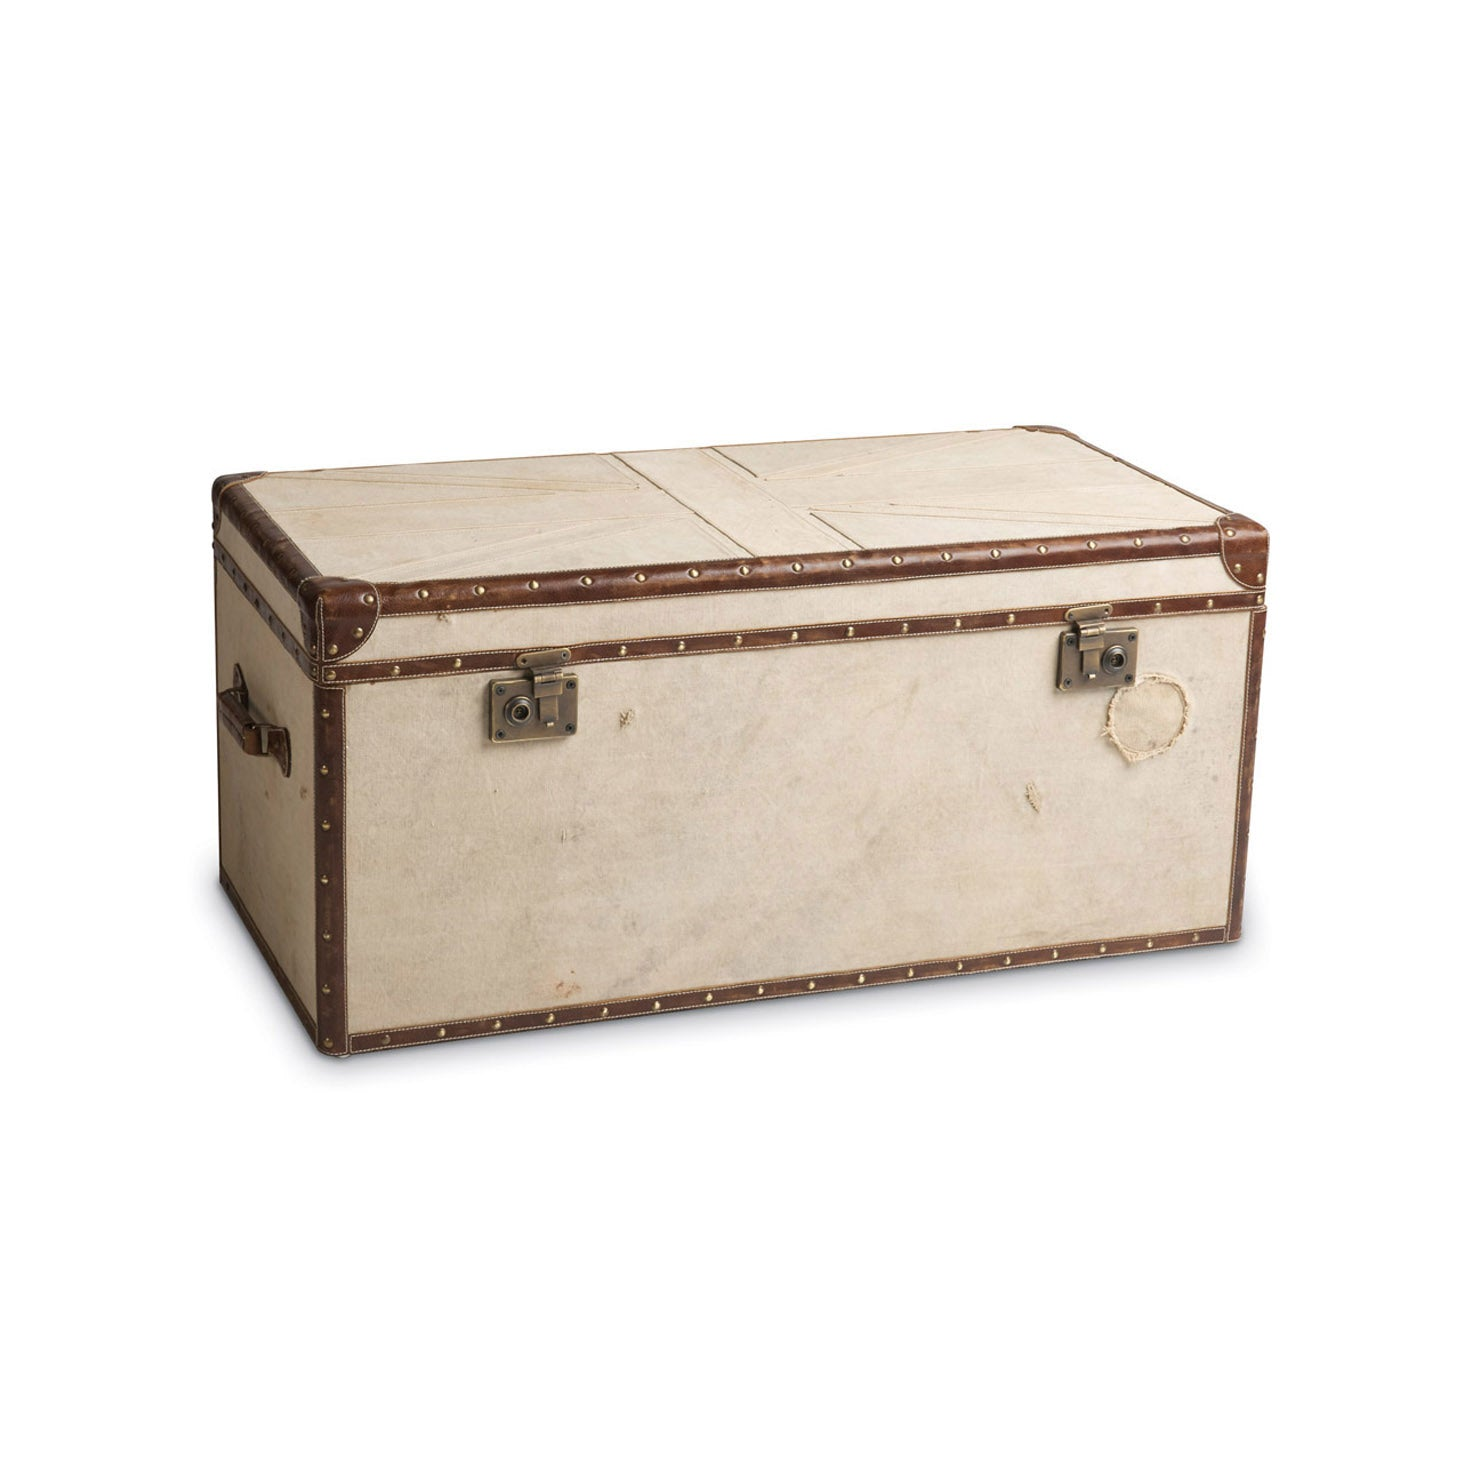 Union Jack Canvas Coffee Table Trunk, Culinary Concepts London, Putti Fine Furnishings